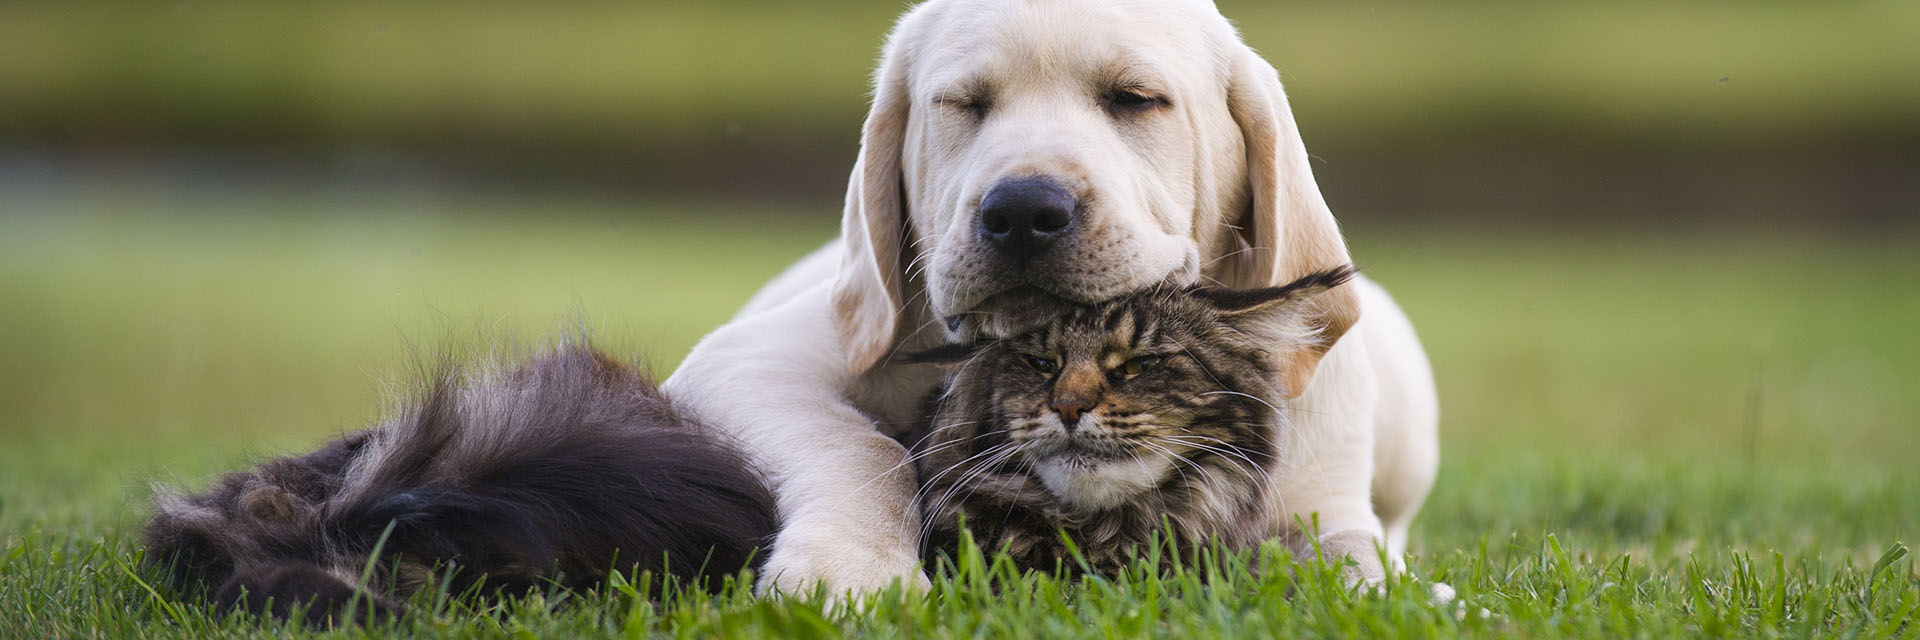 Cat and dog laying in the grass - Pooler Veterinary Hospital